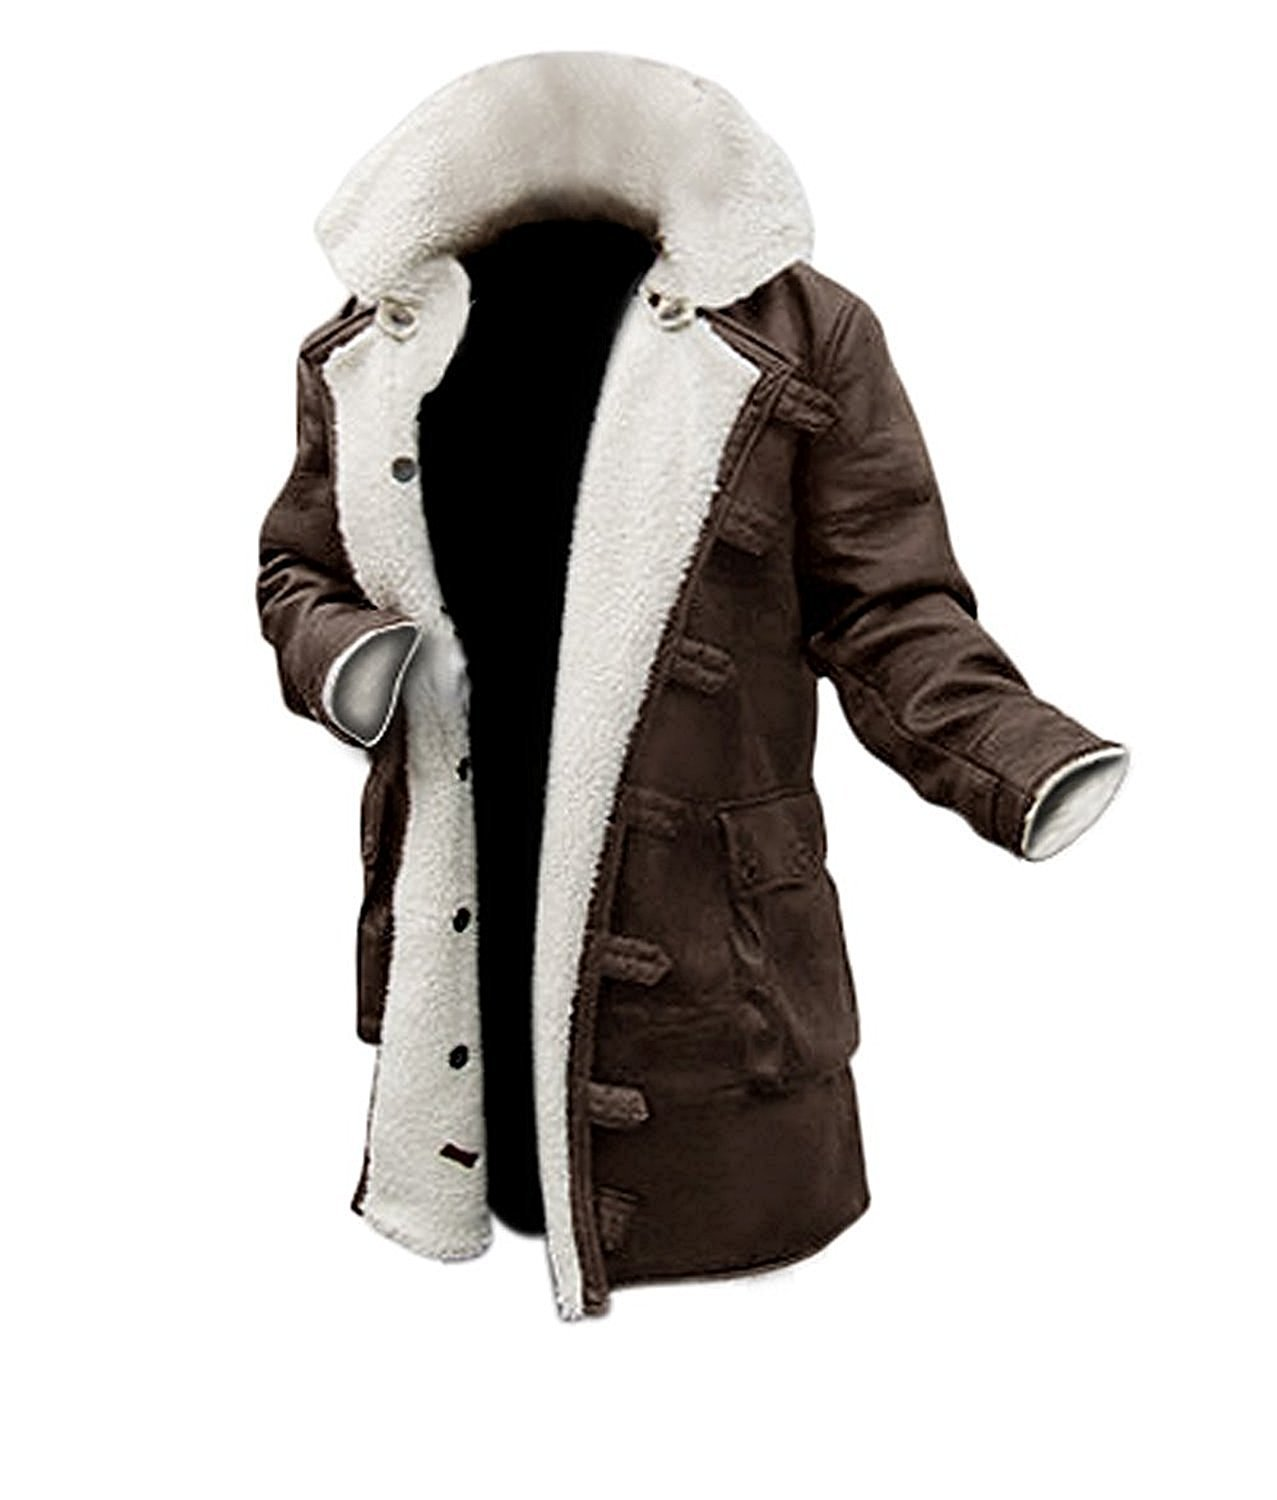 BlingSoul Faux Shearling Winter Coats - Leather Baine Coat Jacket (2XL) [PU-BNCO-BR-2XL]